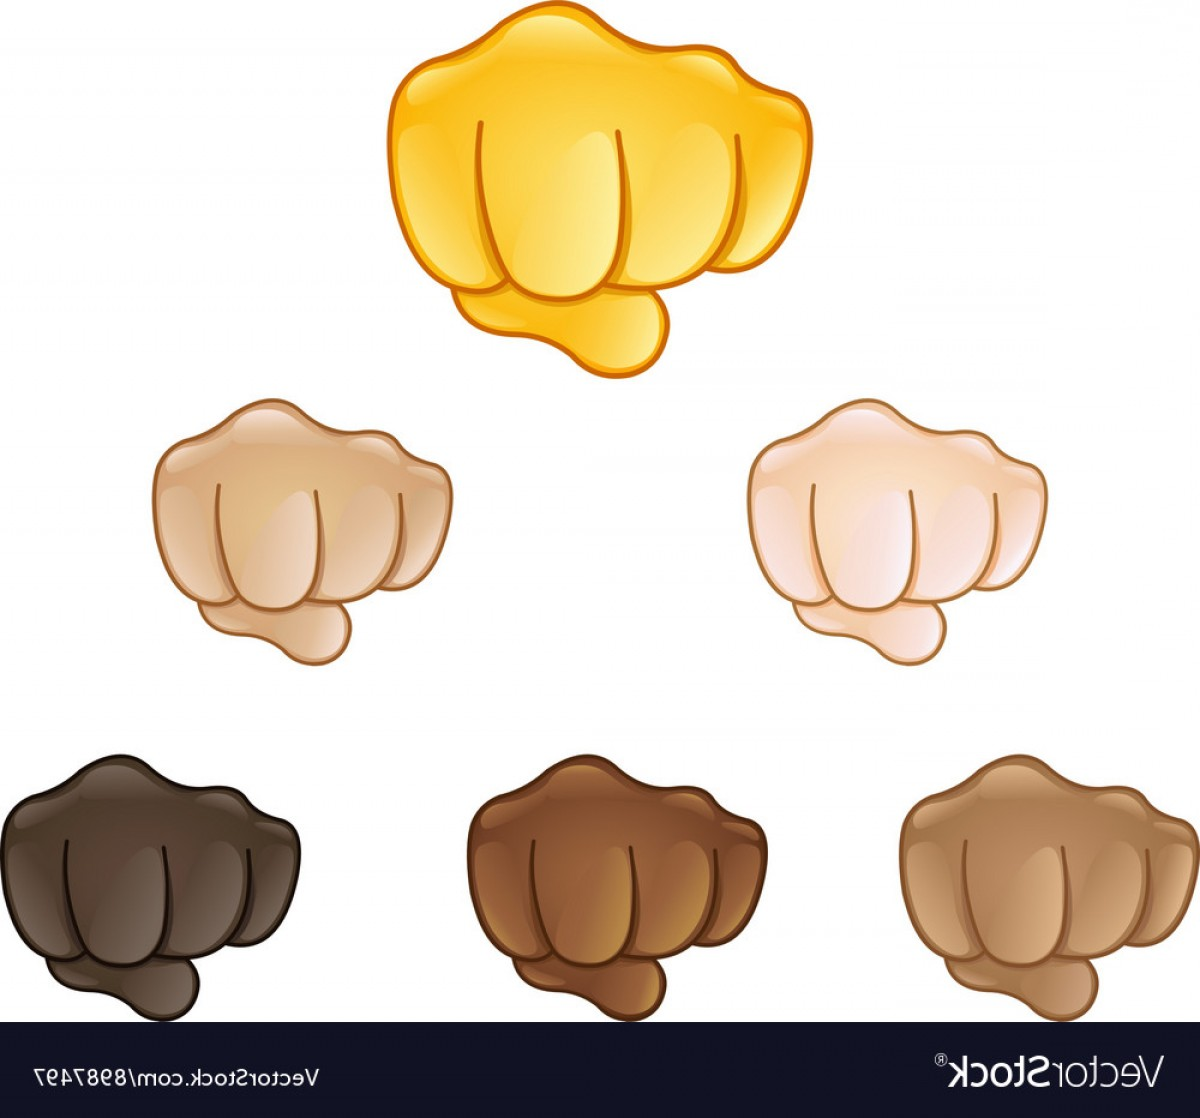 Emoji Fist Bump Vector Graphic: Fisted Hand Sign Emoji Vector